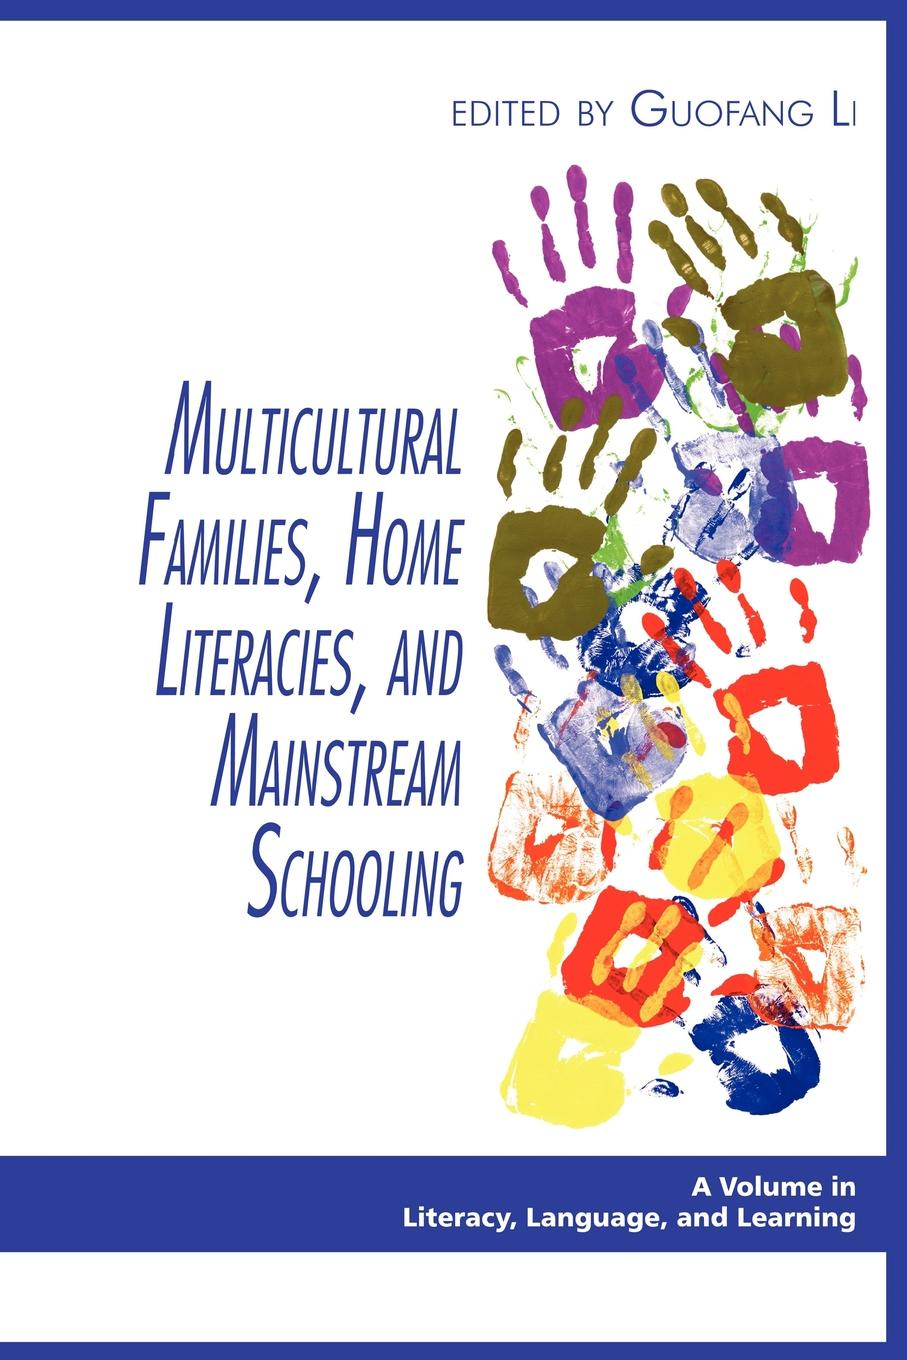 Multicultural Families, Home Literacies, and Mainstream Schooling (PB) denny taylor teaching without testing assessing the complexity of children s literacy learning